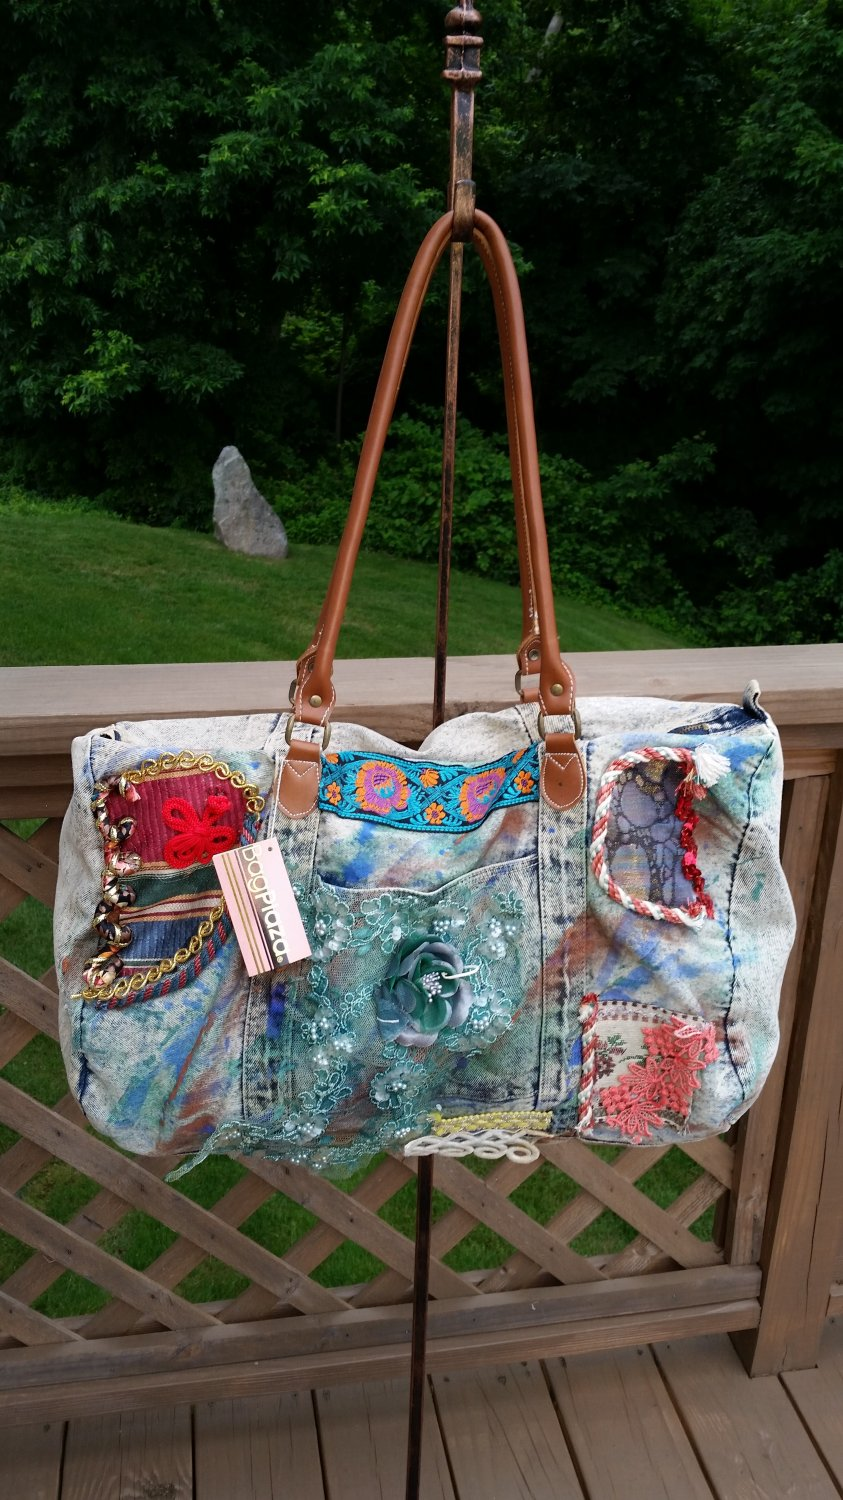 COLOSSAL Embellished Denim Duffle Tote - UNIQUE!